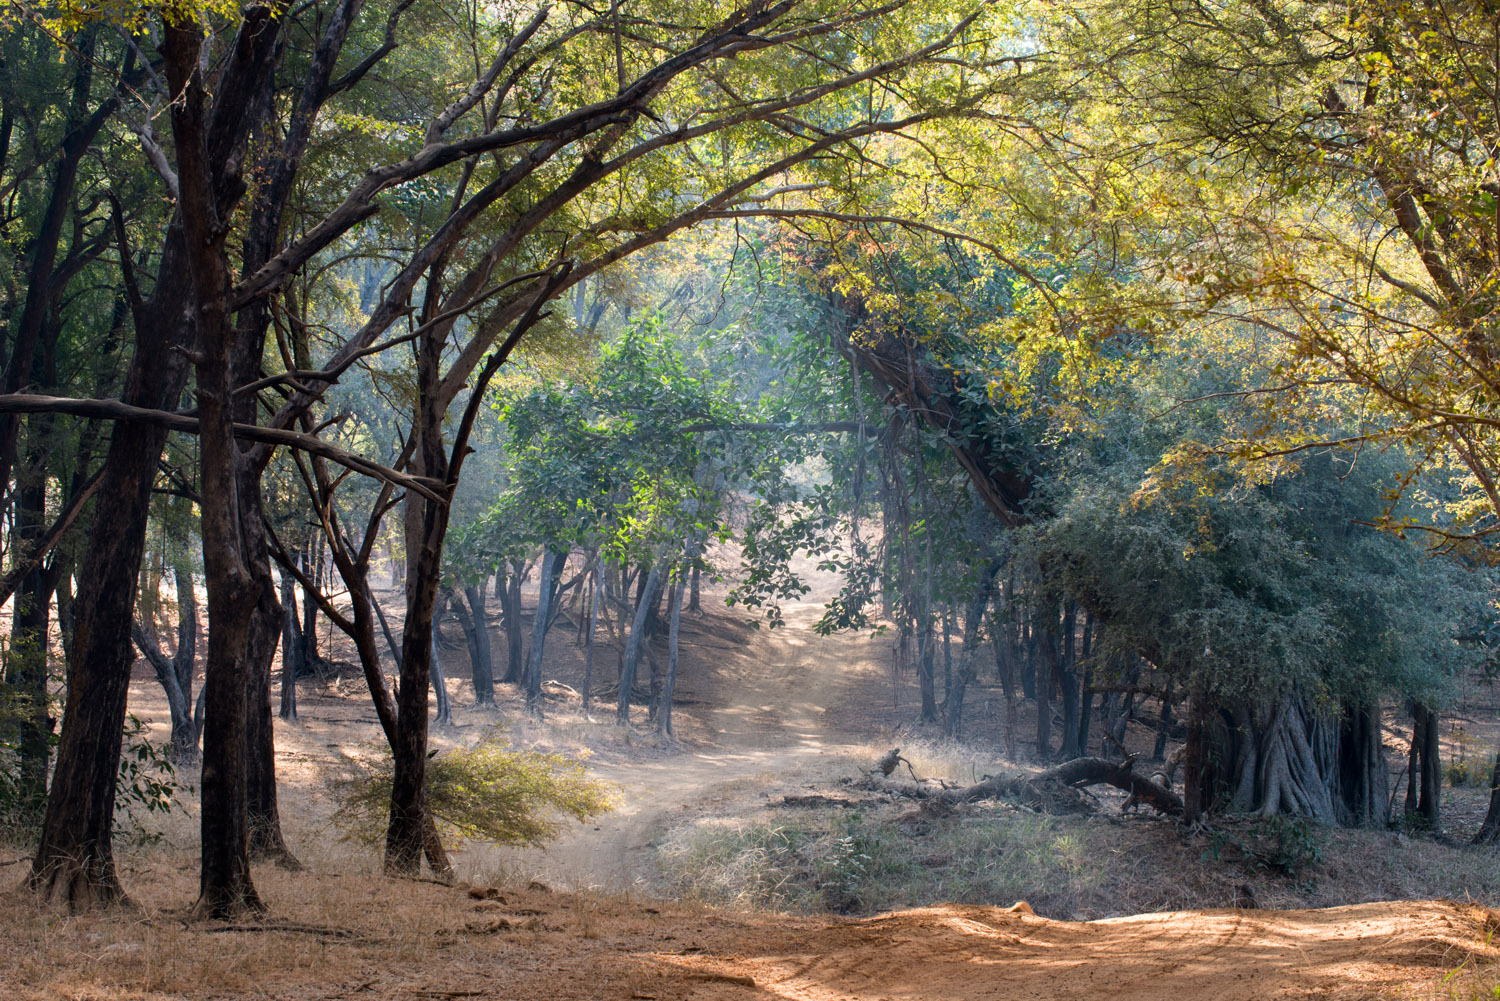 Track through Bengal tiger forest, Ranthambhore National Park, Rajasthan, India